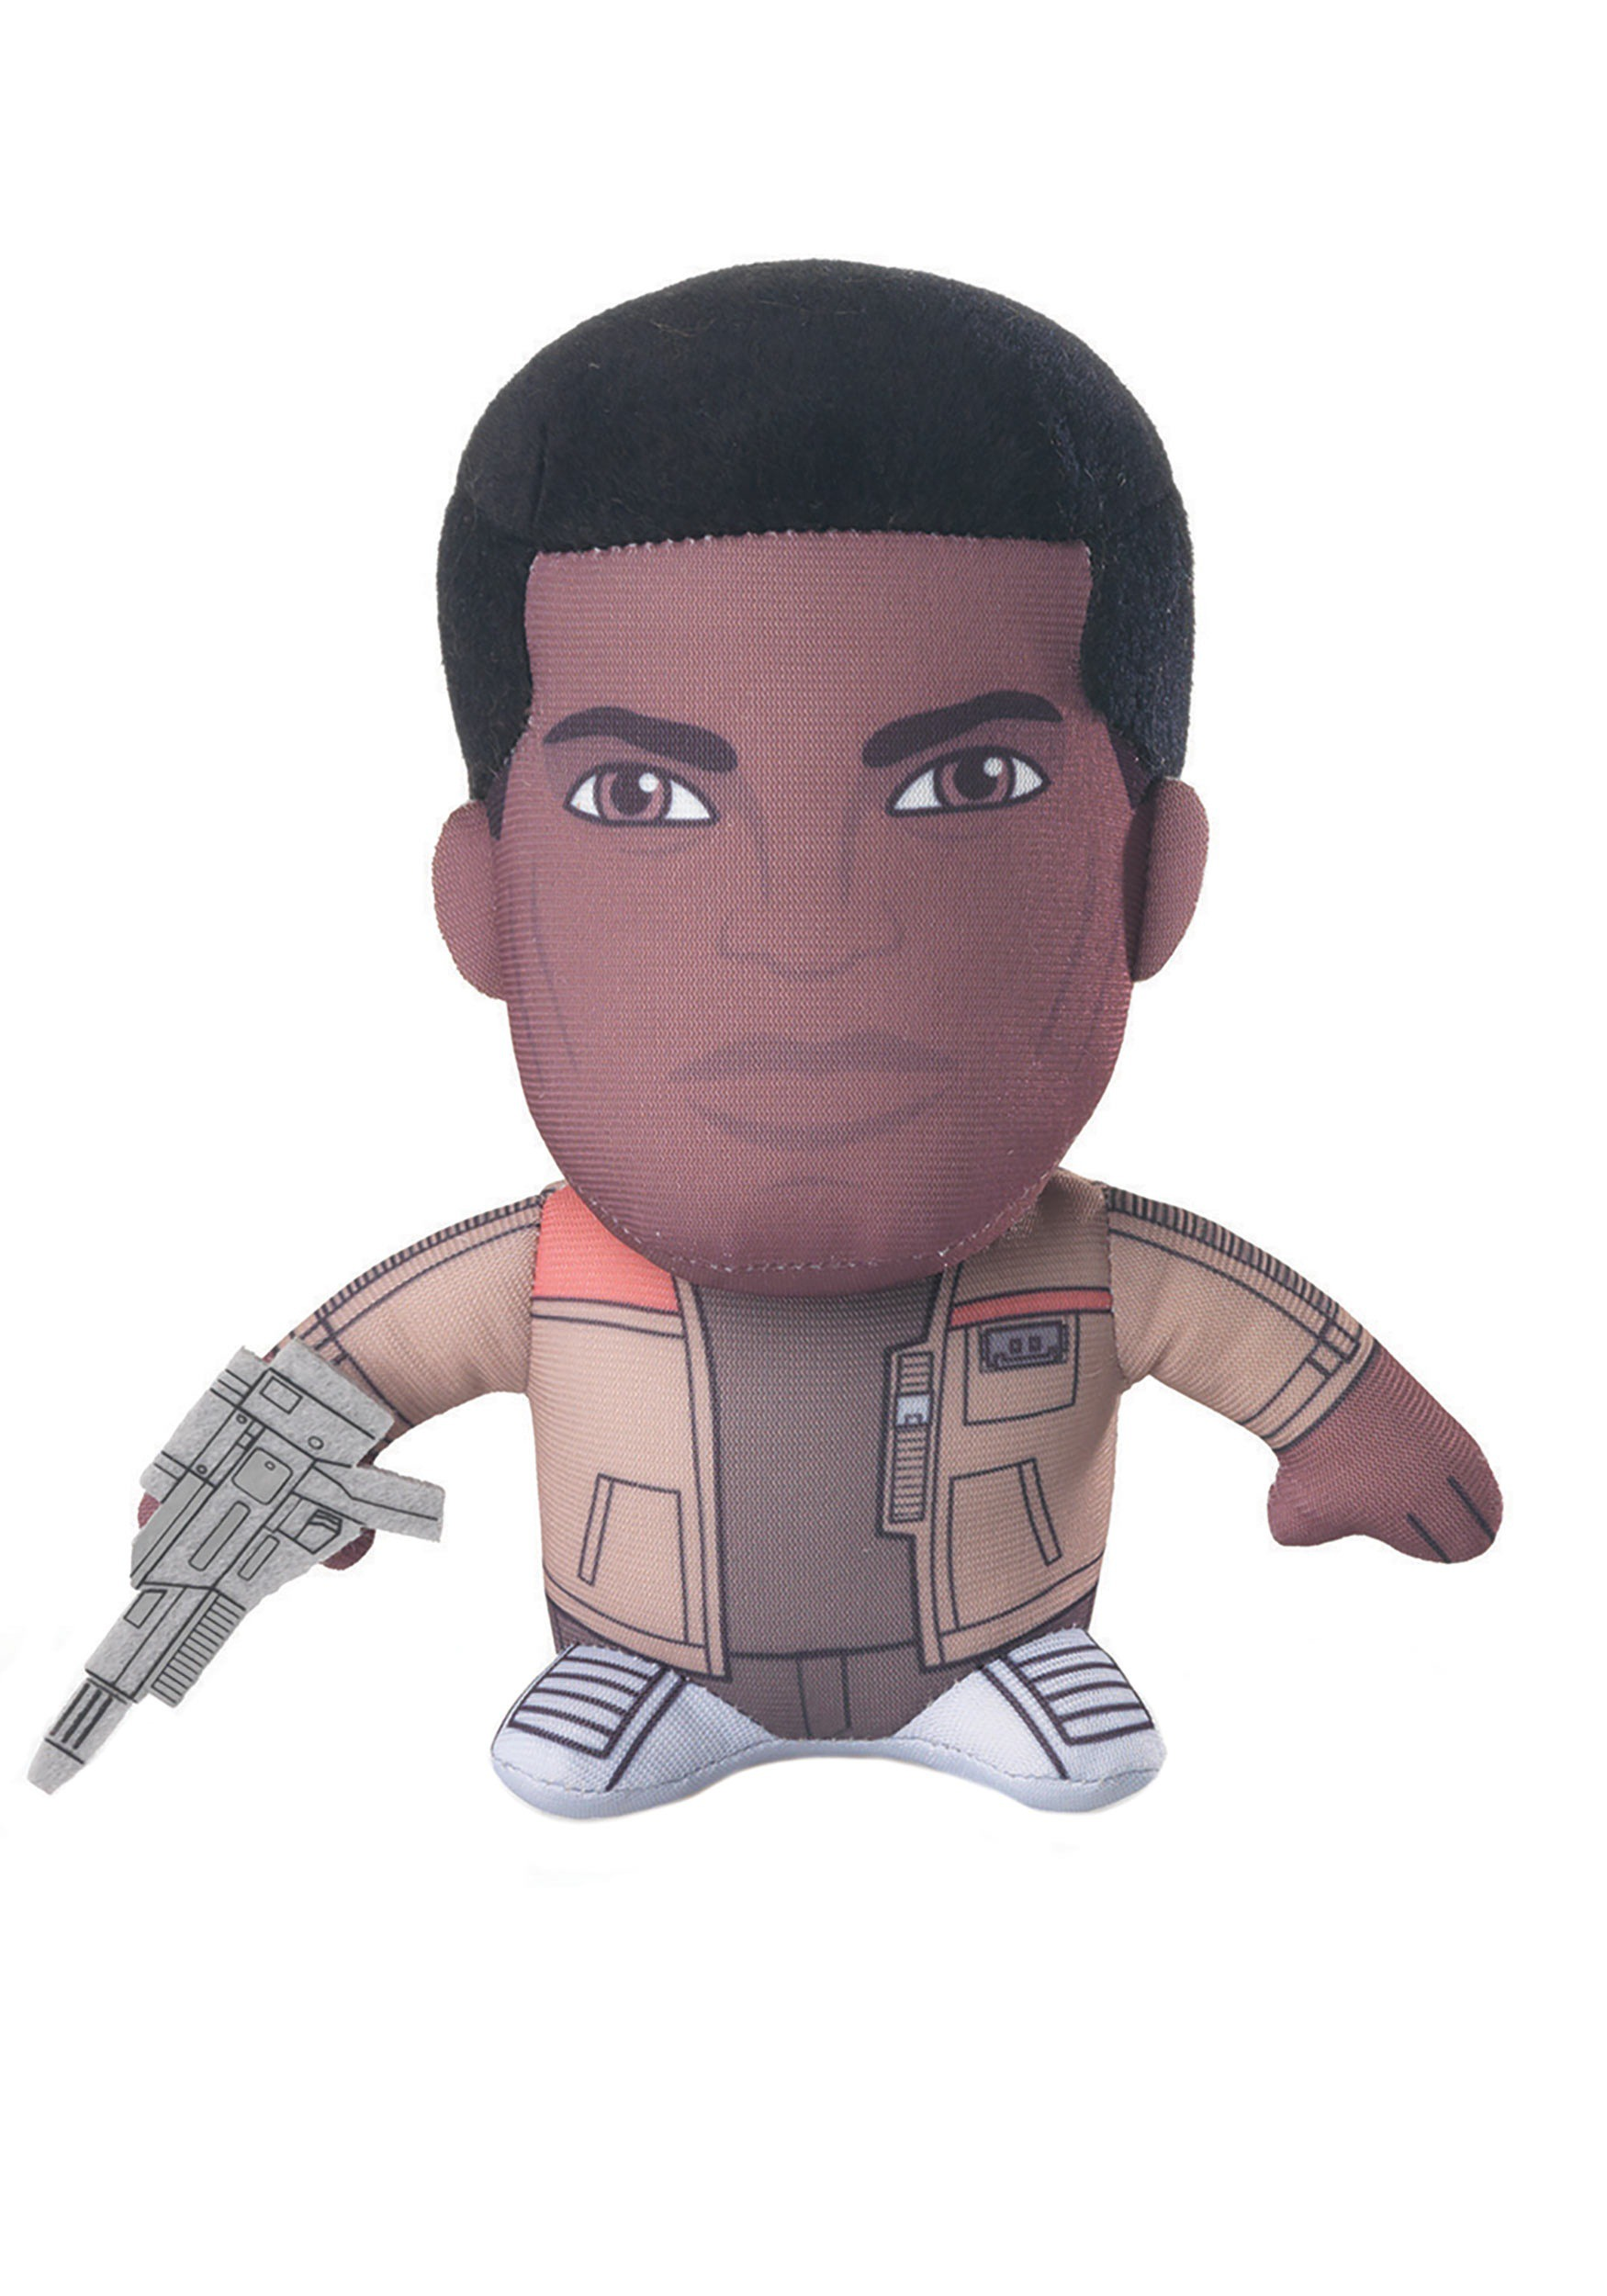 Star Wars The Force Awakens Finn Super Deformed Plush CO83002